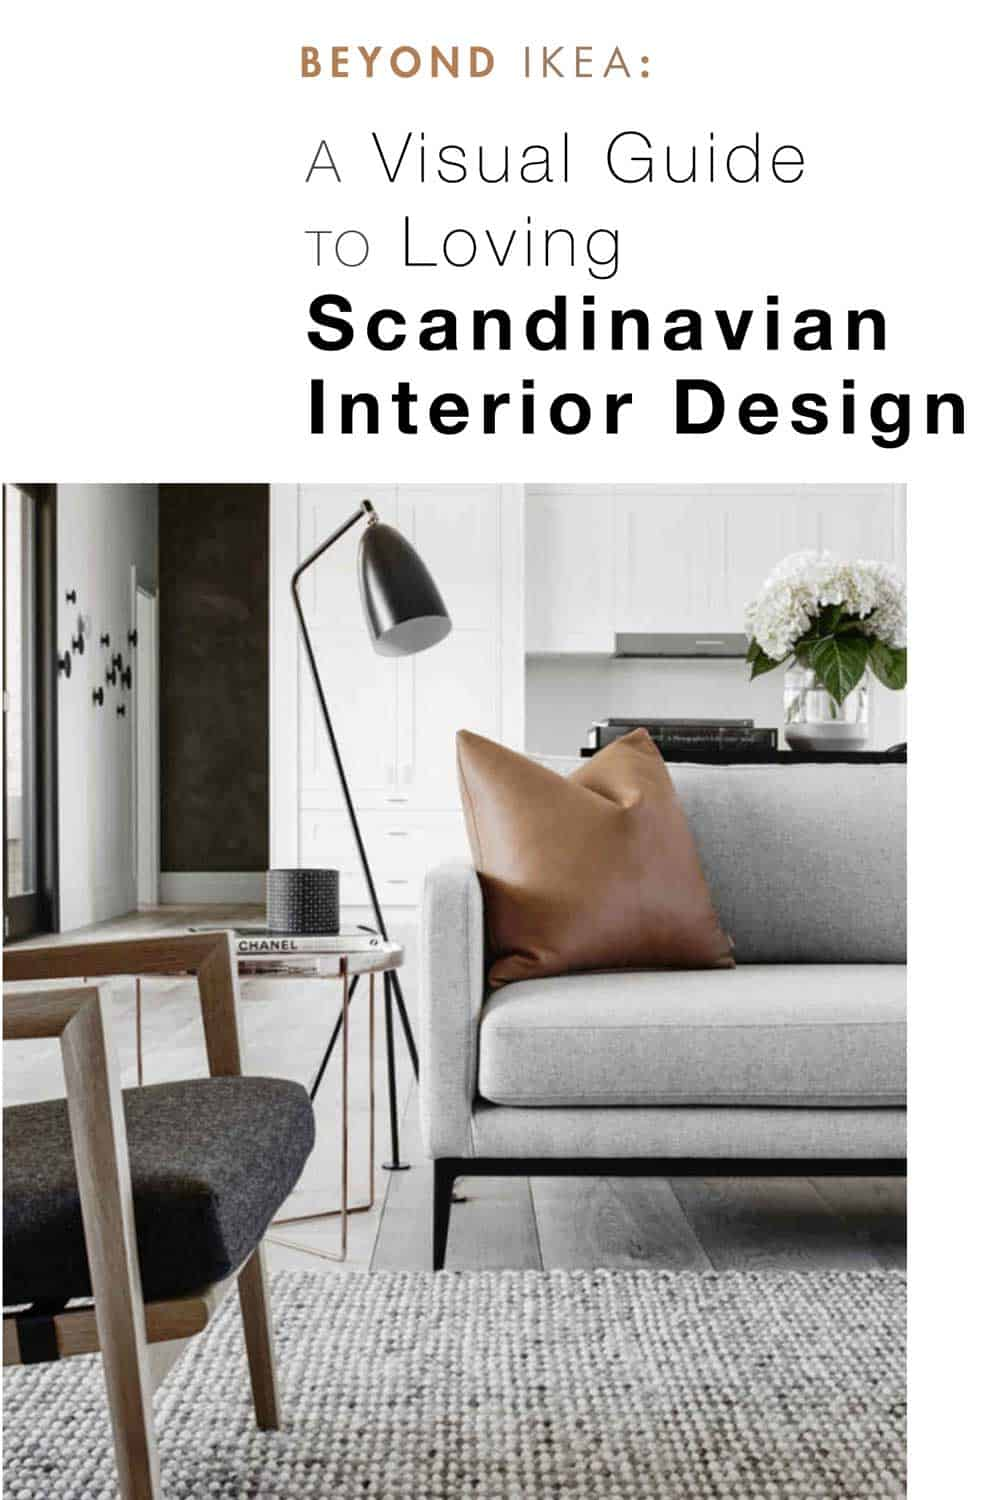 Beyond ikea a visual guide to loving scandinavian - Scandinavian interior design magazine ...